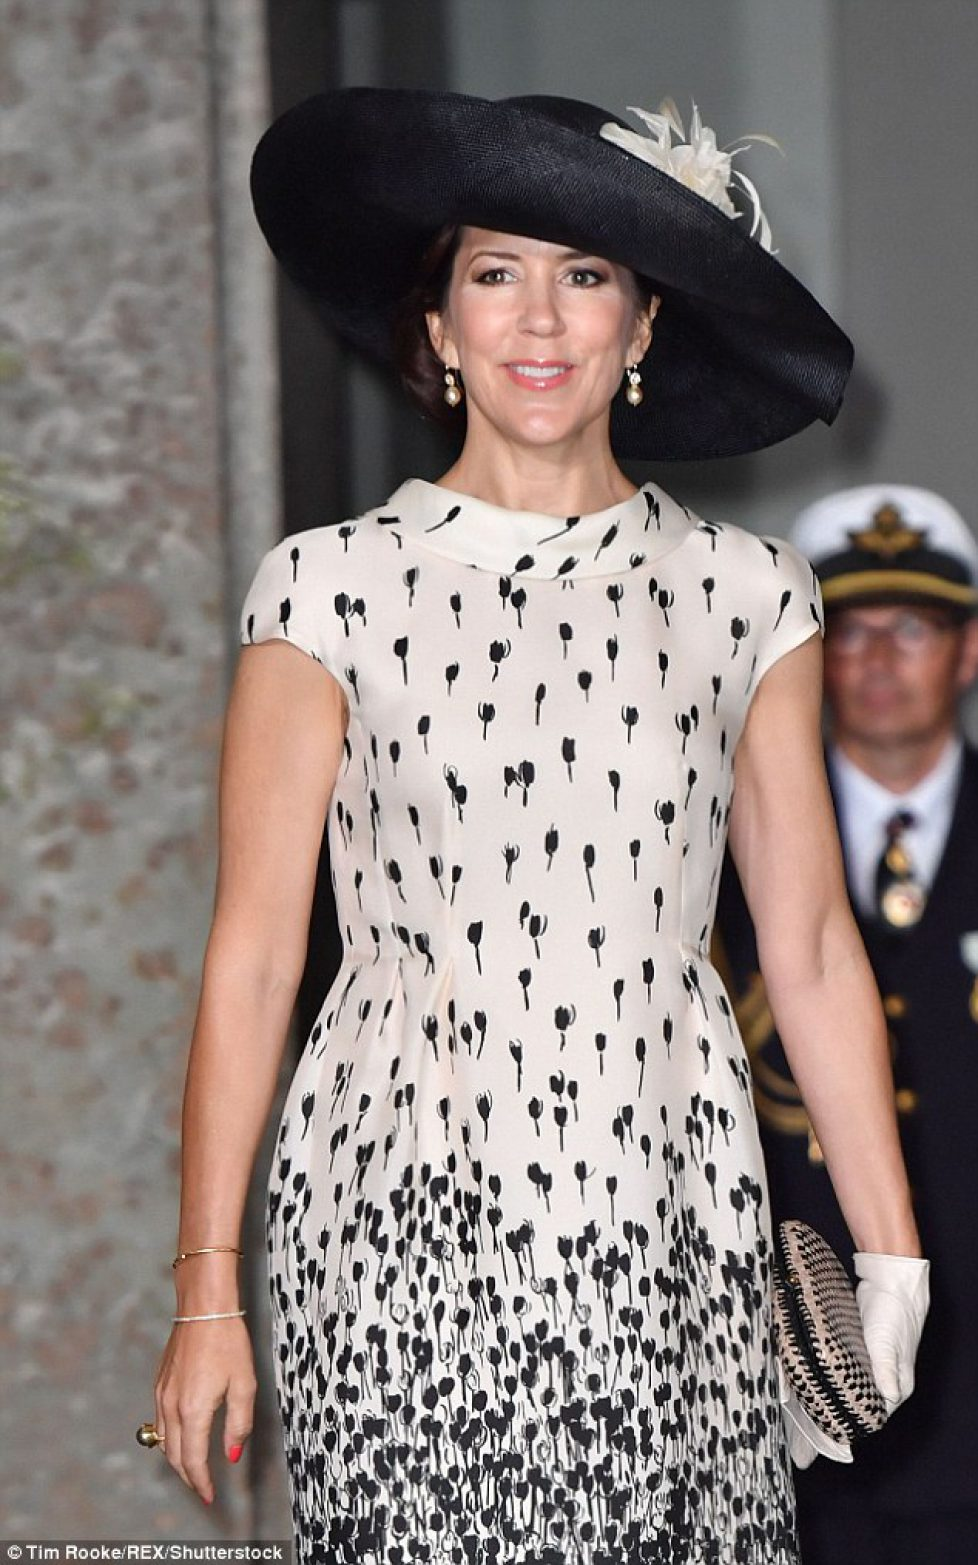 34AF9B8900000578-3612631-Crown_Princess_Mary_of_Denmark_stuns_once_again_as_attends_the_c-a-1_1464350854540